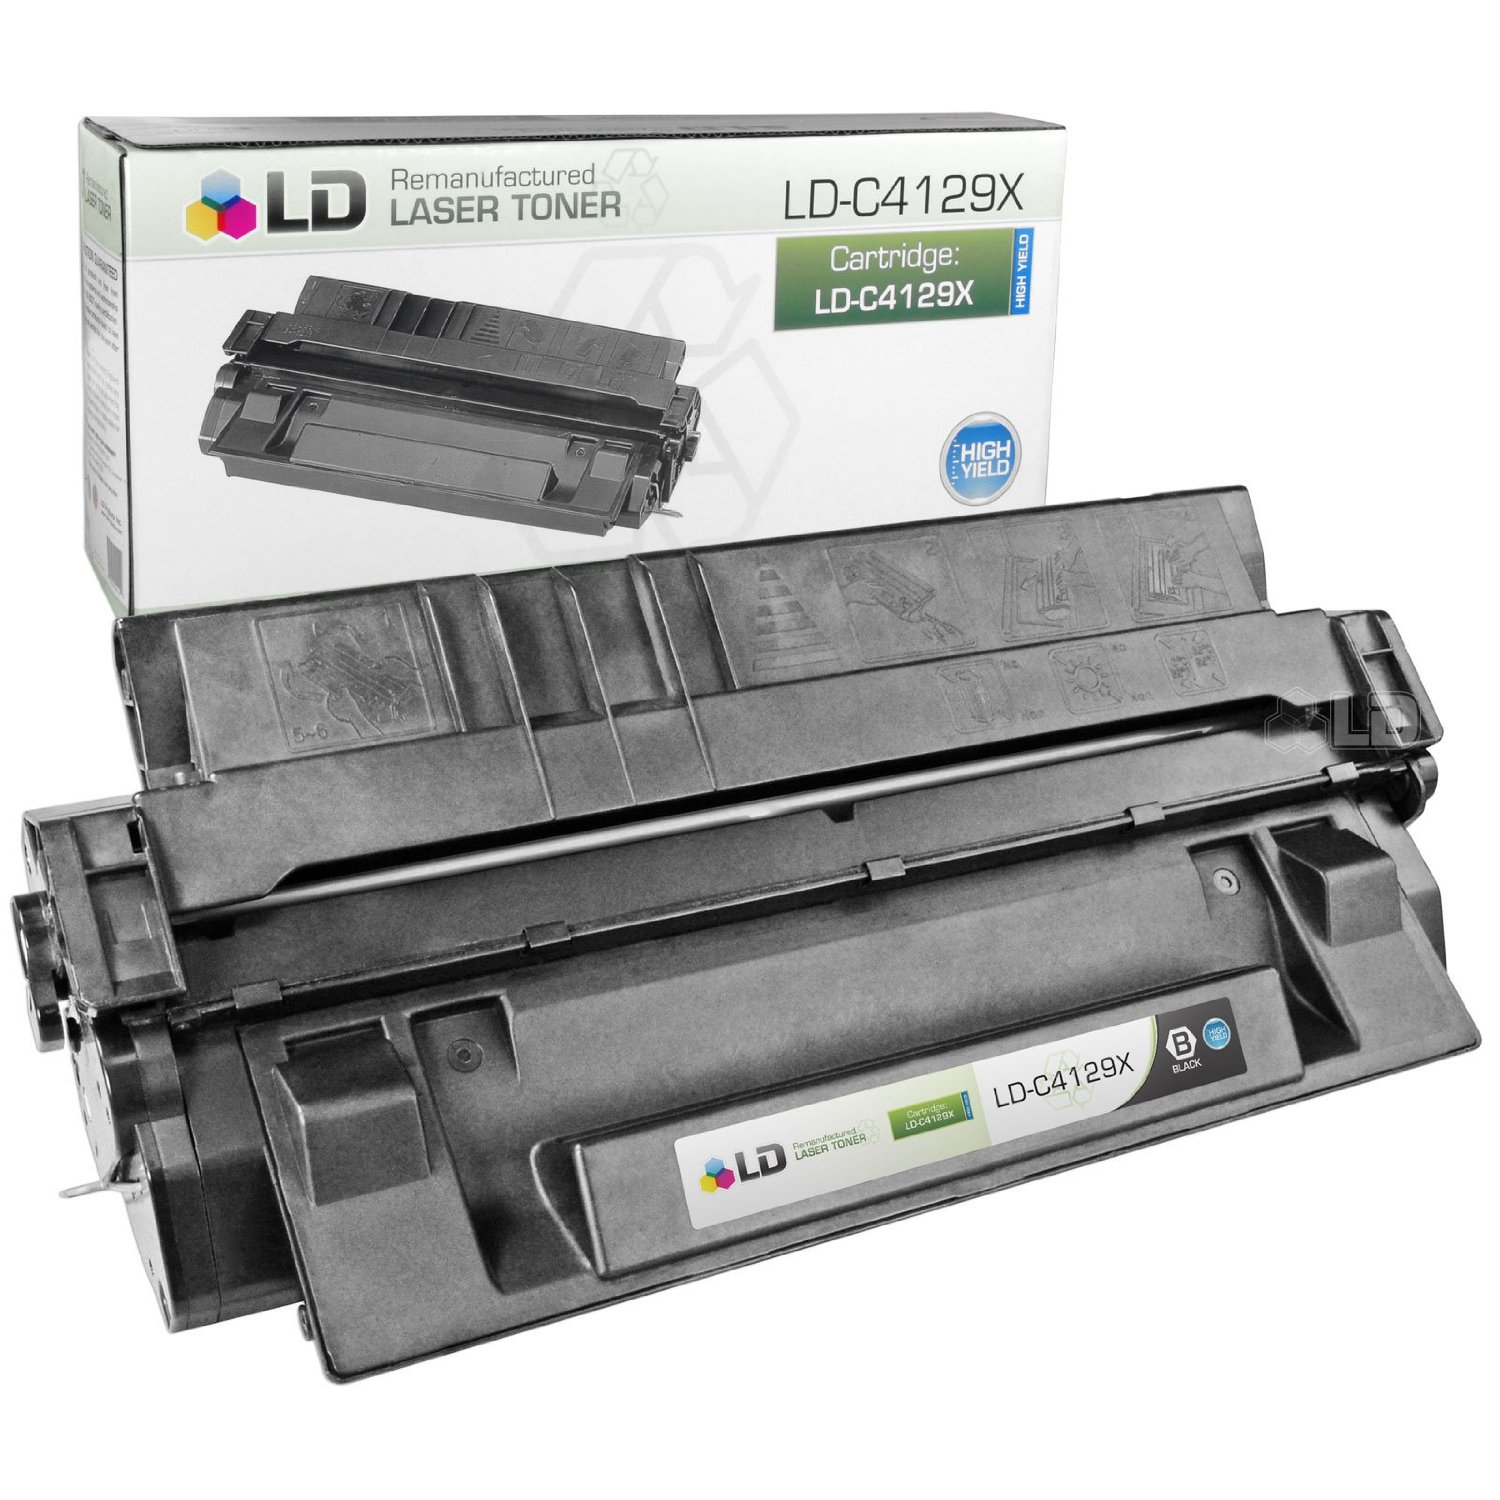 LD Remanufactured Replacement Laser Toner Cartridge for Hewlett Packard C4129X (HP 29X) Black